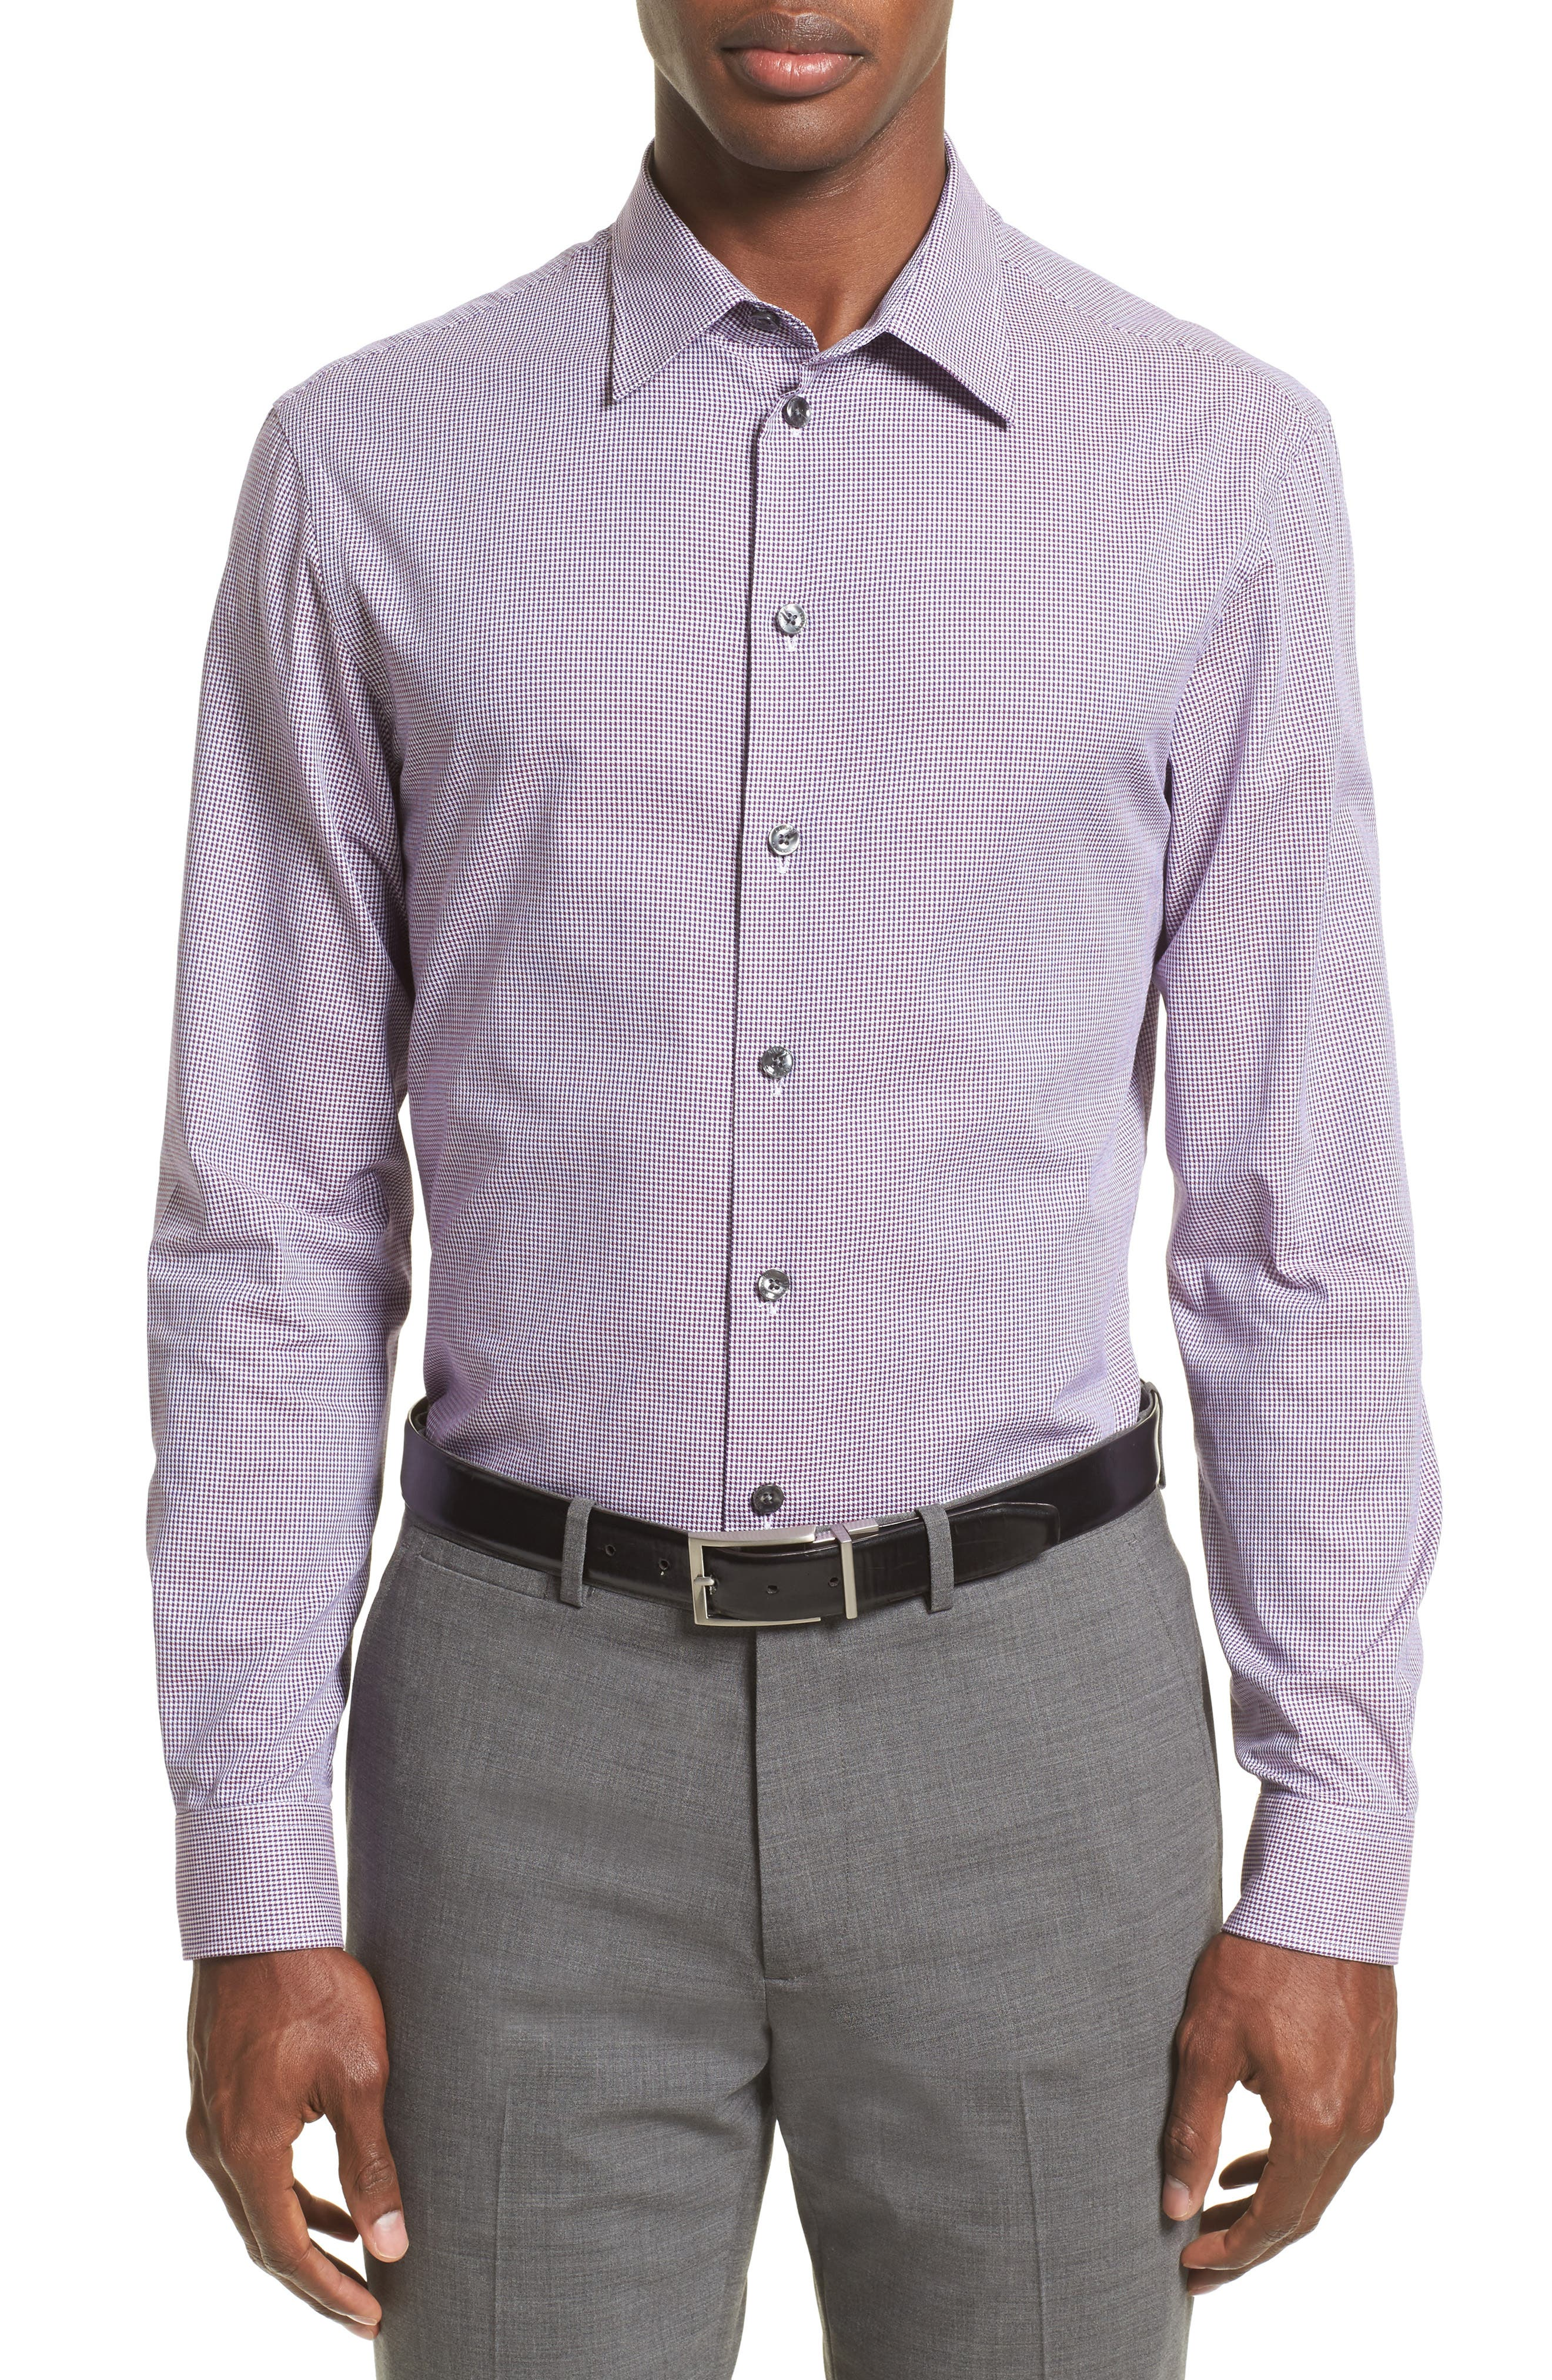 Regular Fit Houndstooth Sport Shirt,                             Main thumbnail 1, color,                             Anthracite/ Purple